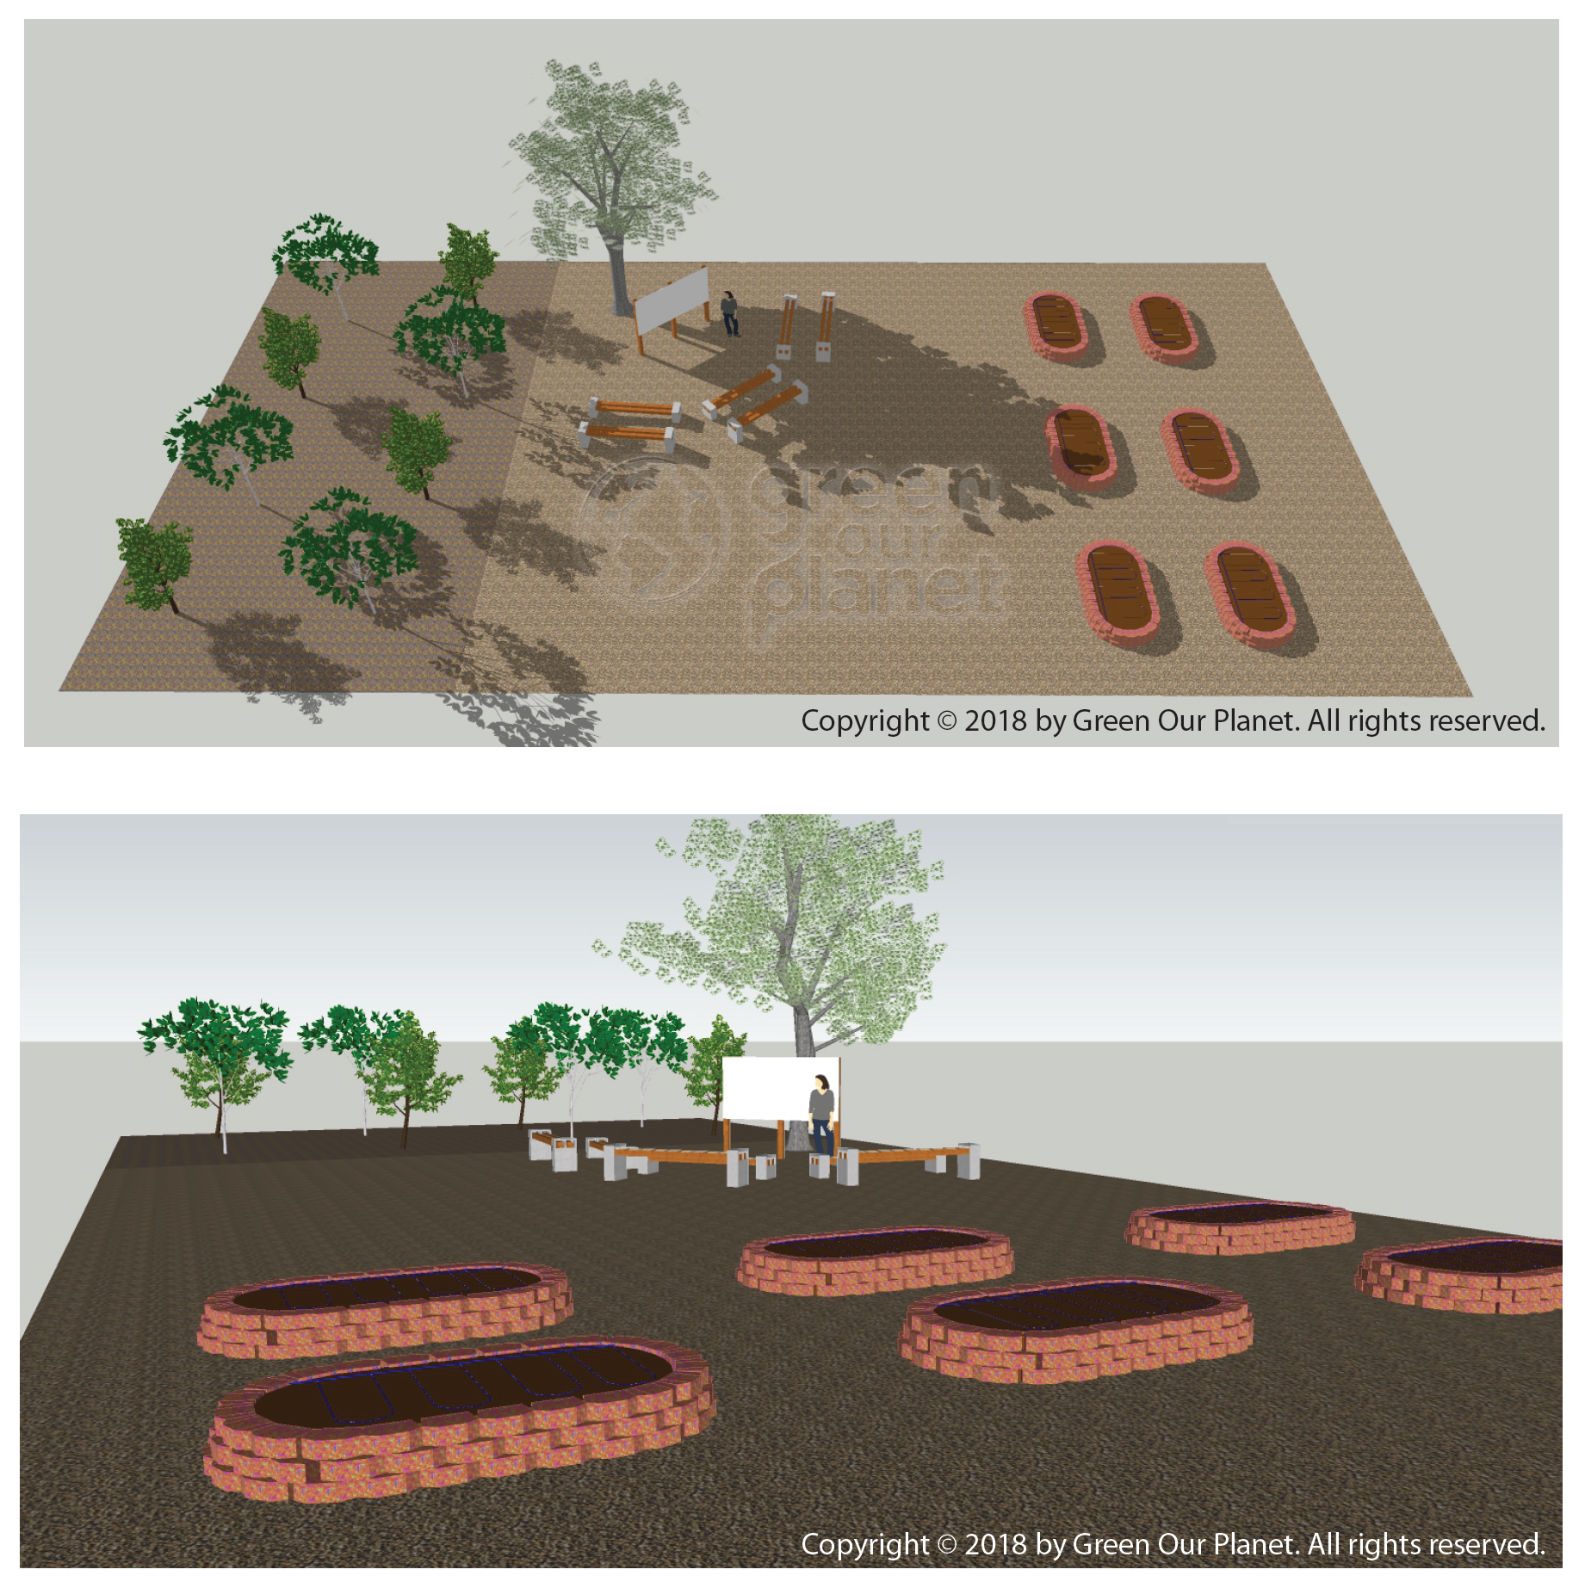 images of a garden model